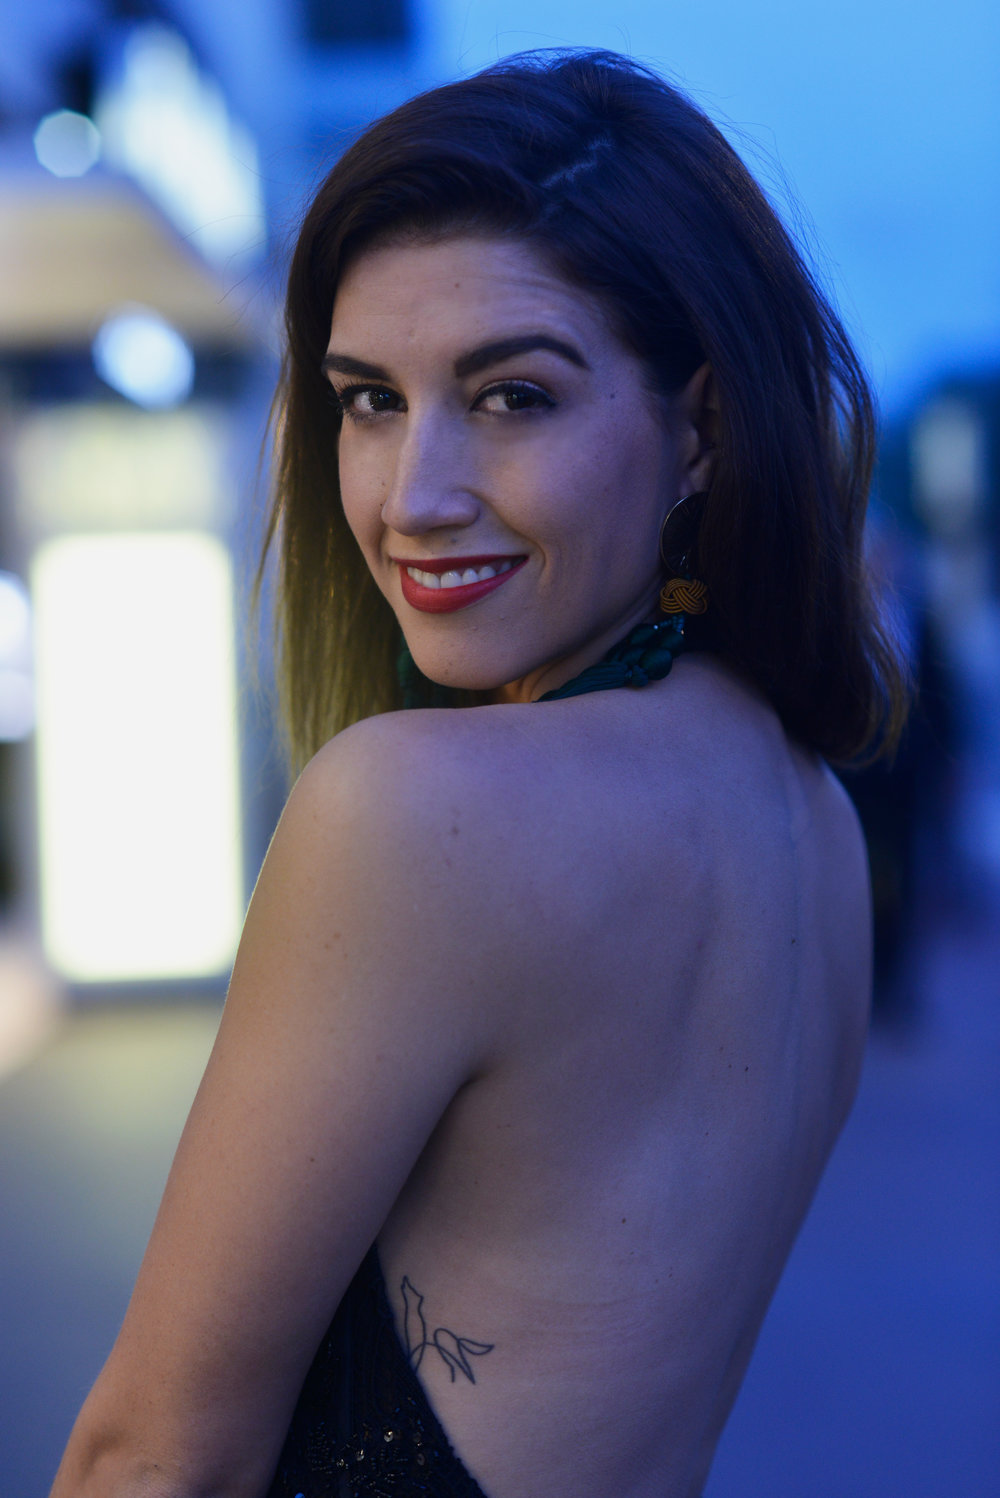 Alexandra Nell at the 71st Cannes Film Festival attending DOGMAN by Matteo Garrone (2018)